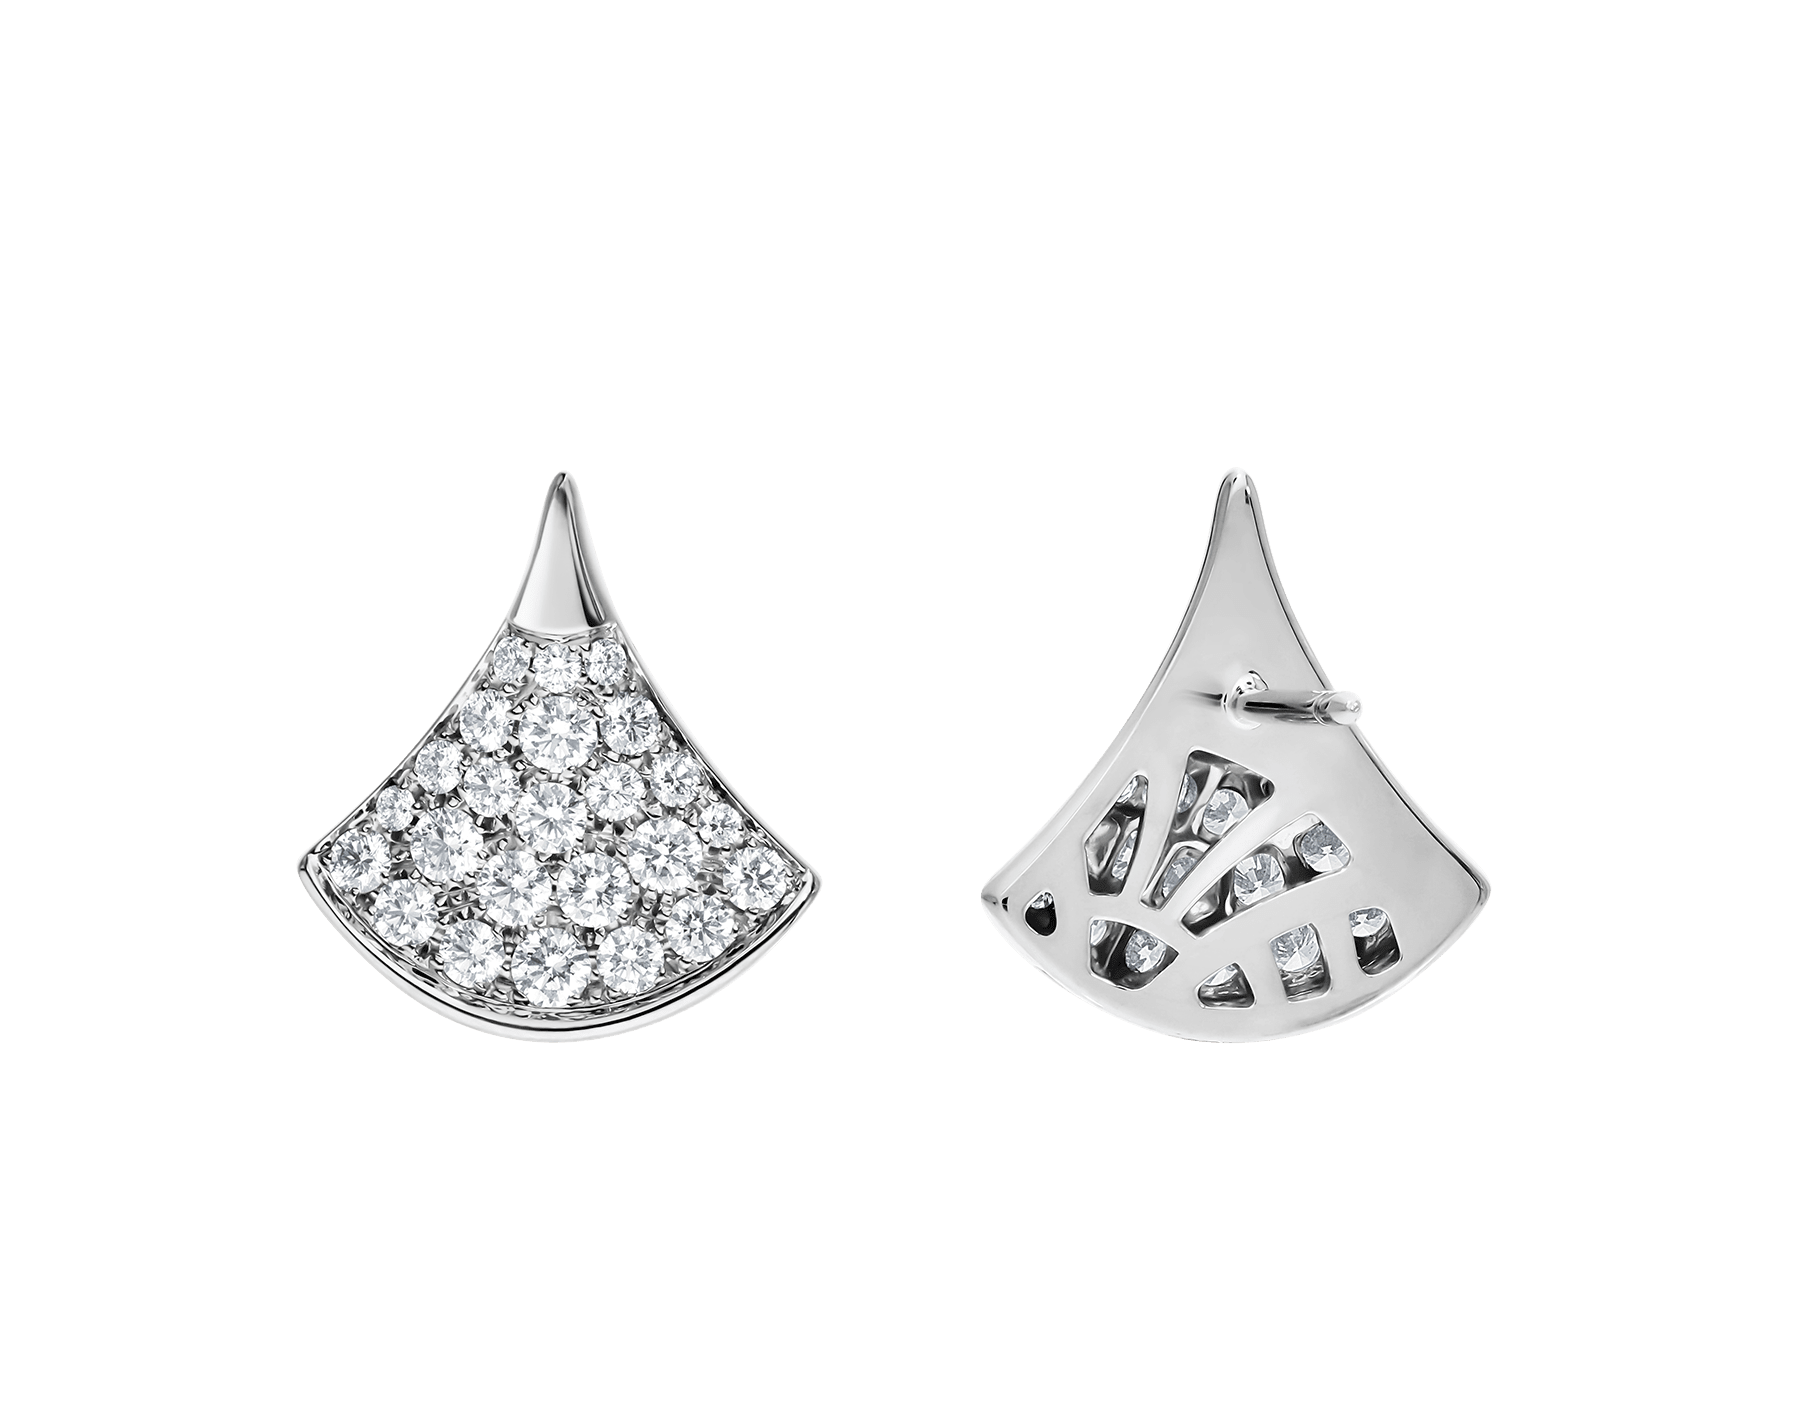 DIVAS' DREAM stud earrings in 18 kt white gold set with pavé diamonds. 352602 image 3